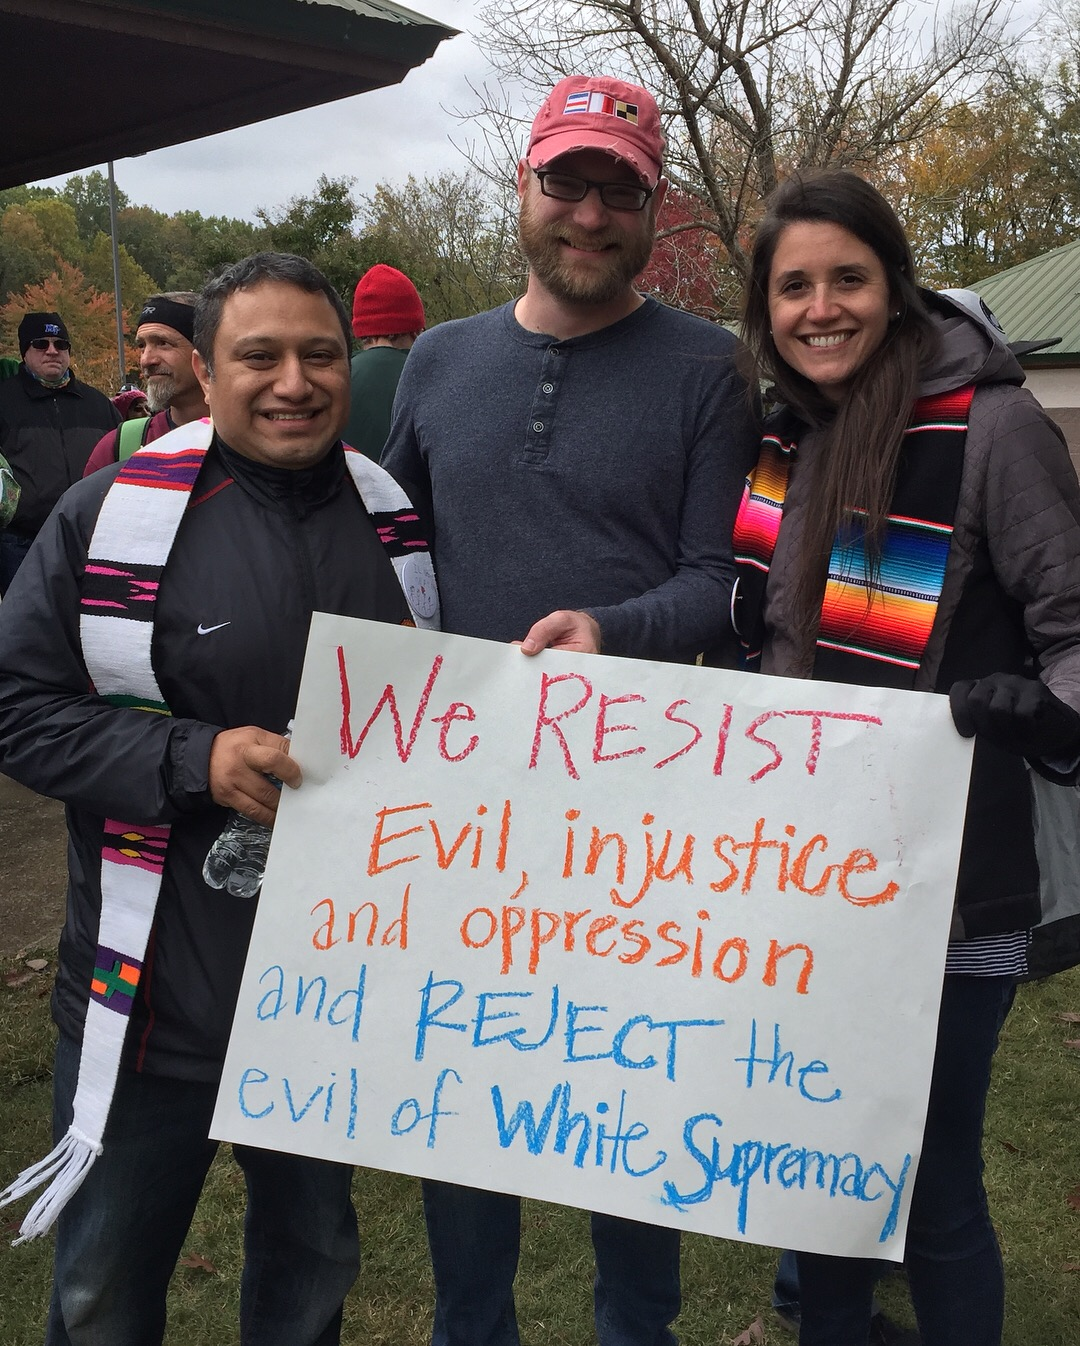 As United Methodists, we vow to resist evil, injustice and oppression in whatever forms they present themselves when we are baptized.